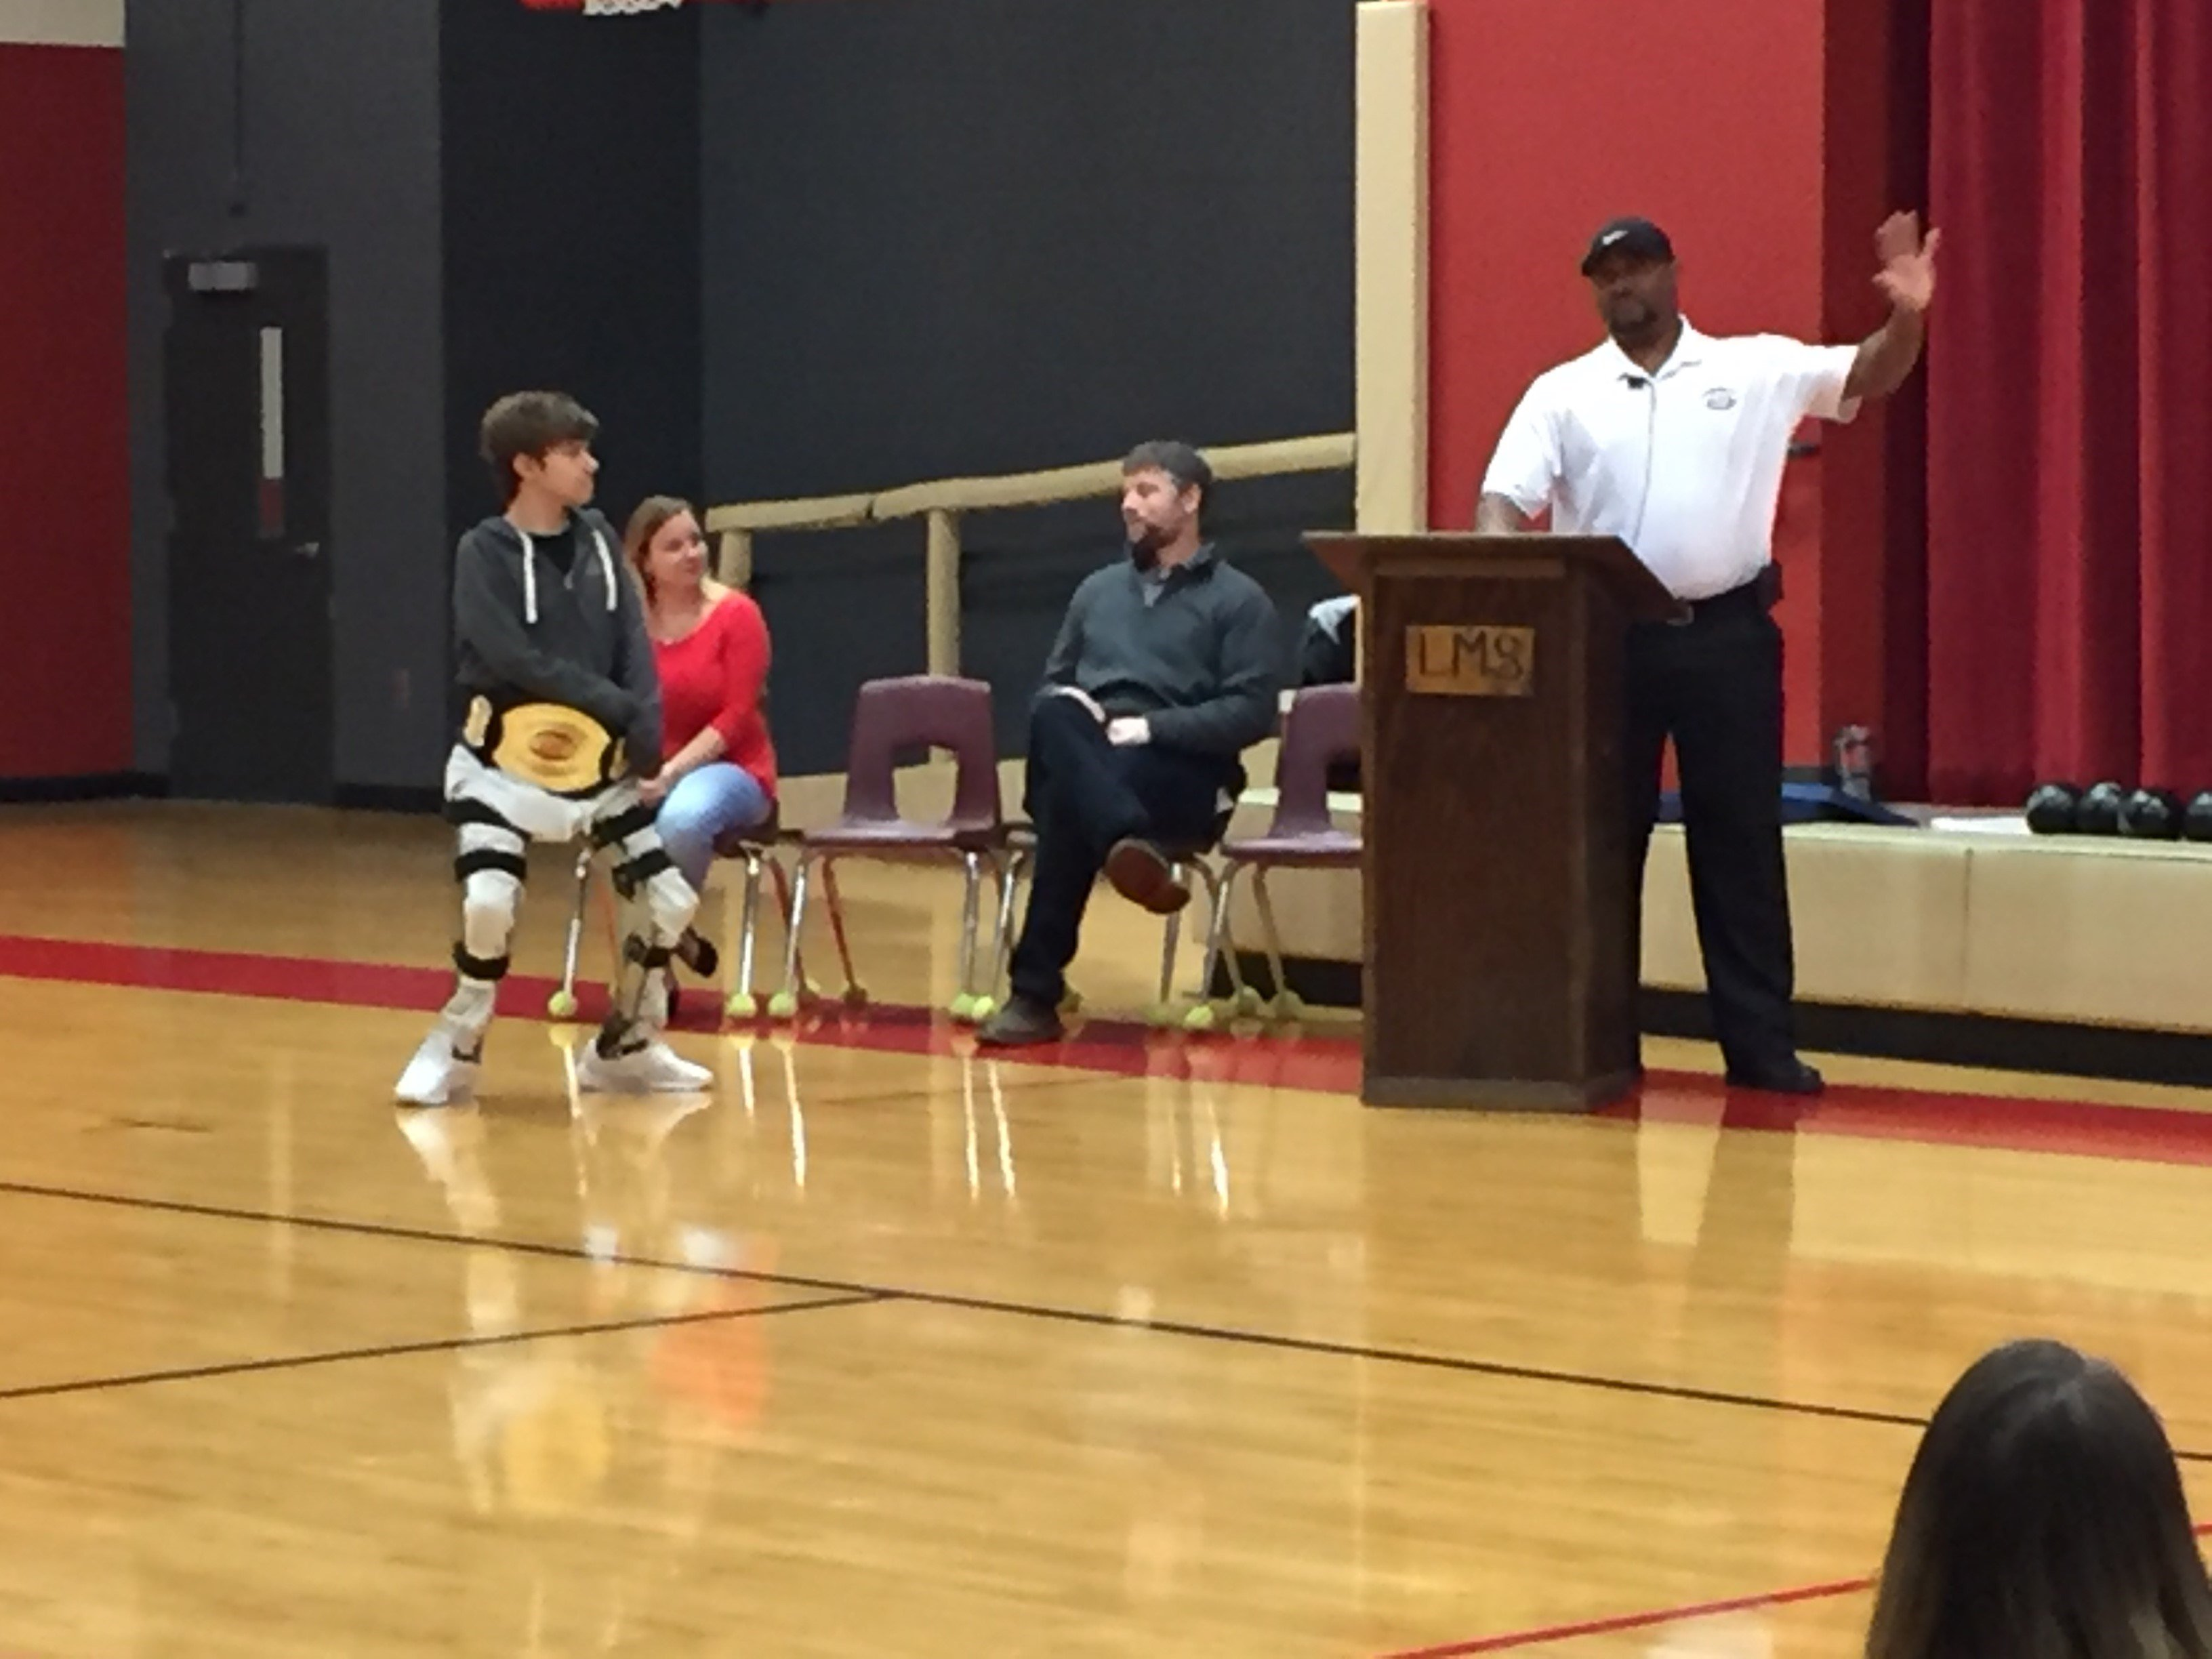 Izzy is presented with the 'Heart of a Champion' award (FOX Carolina/ Dec. 19, 2017)